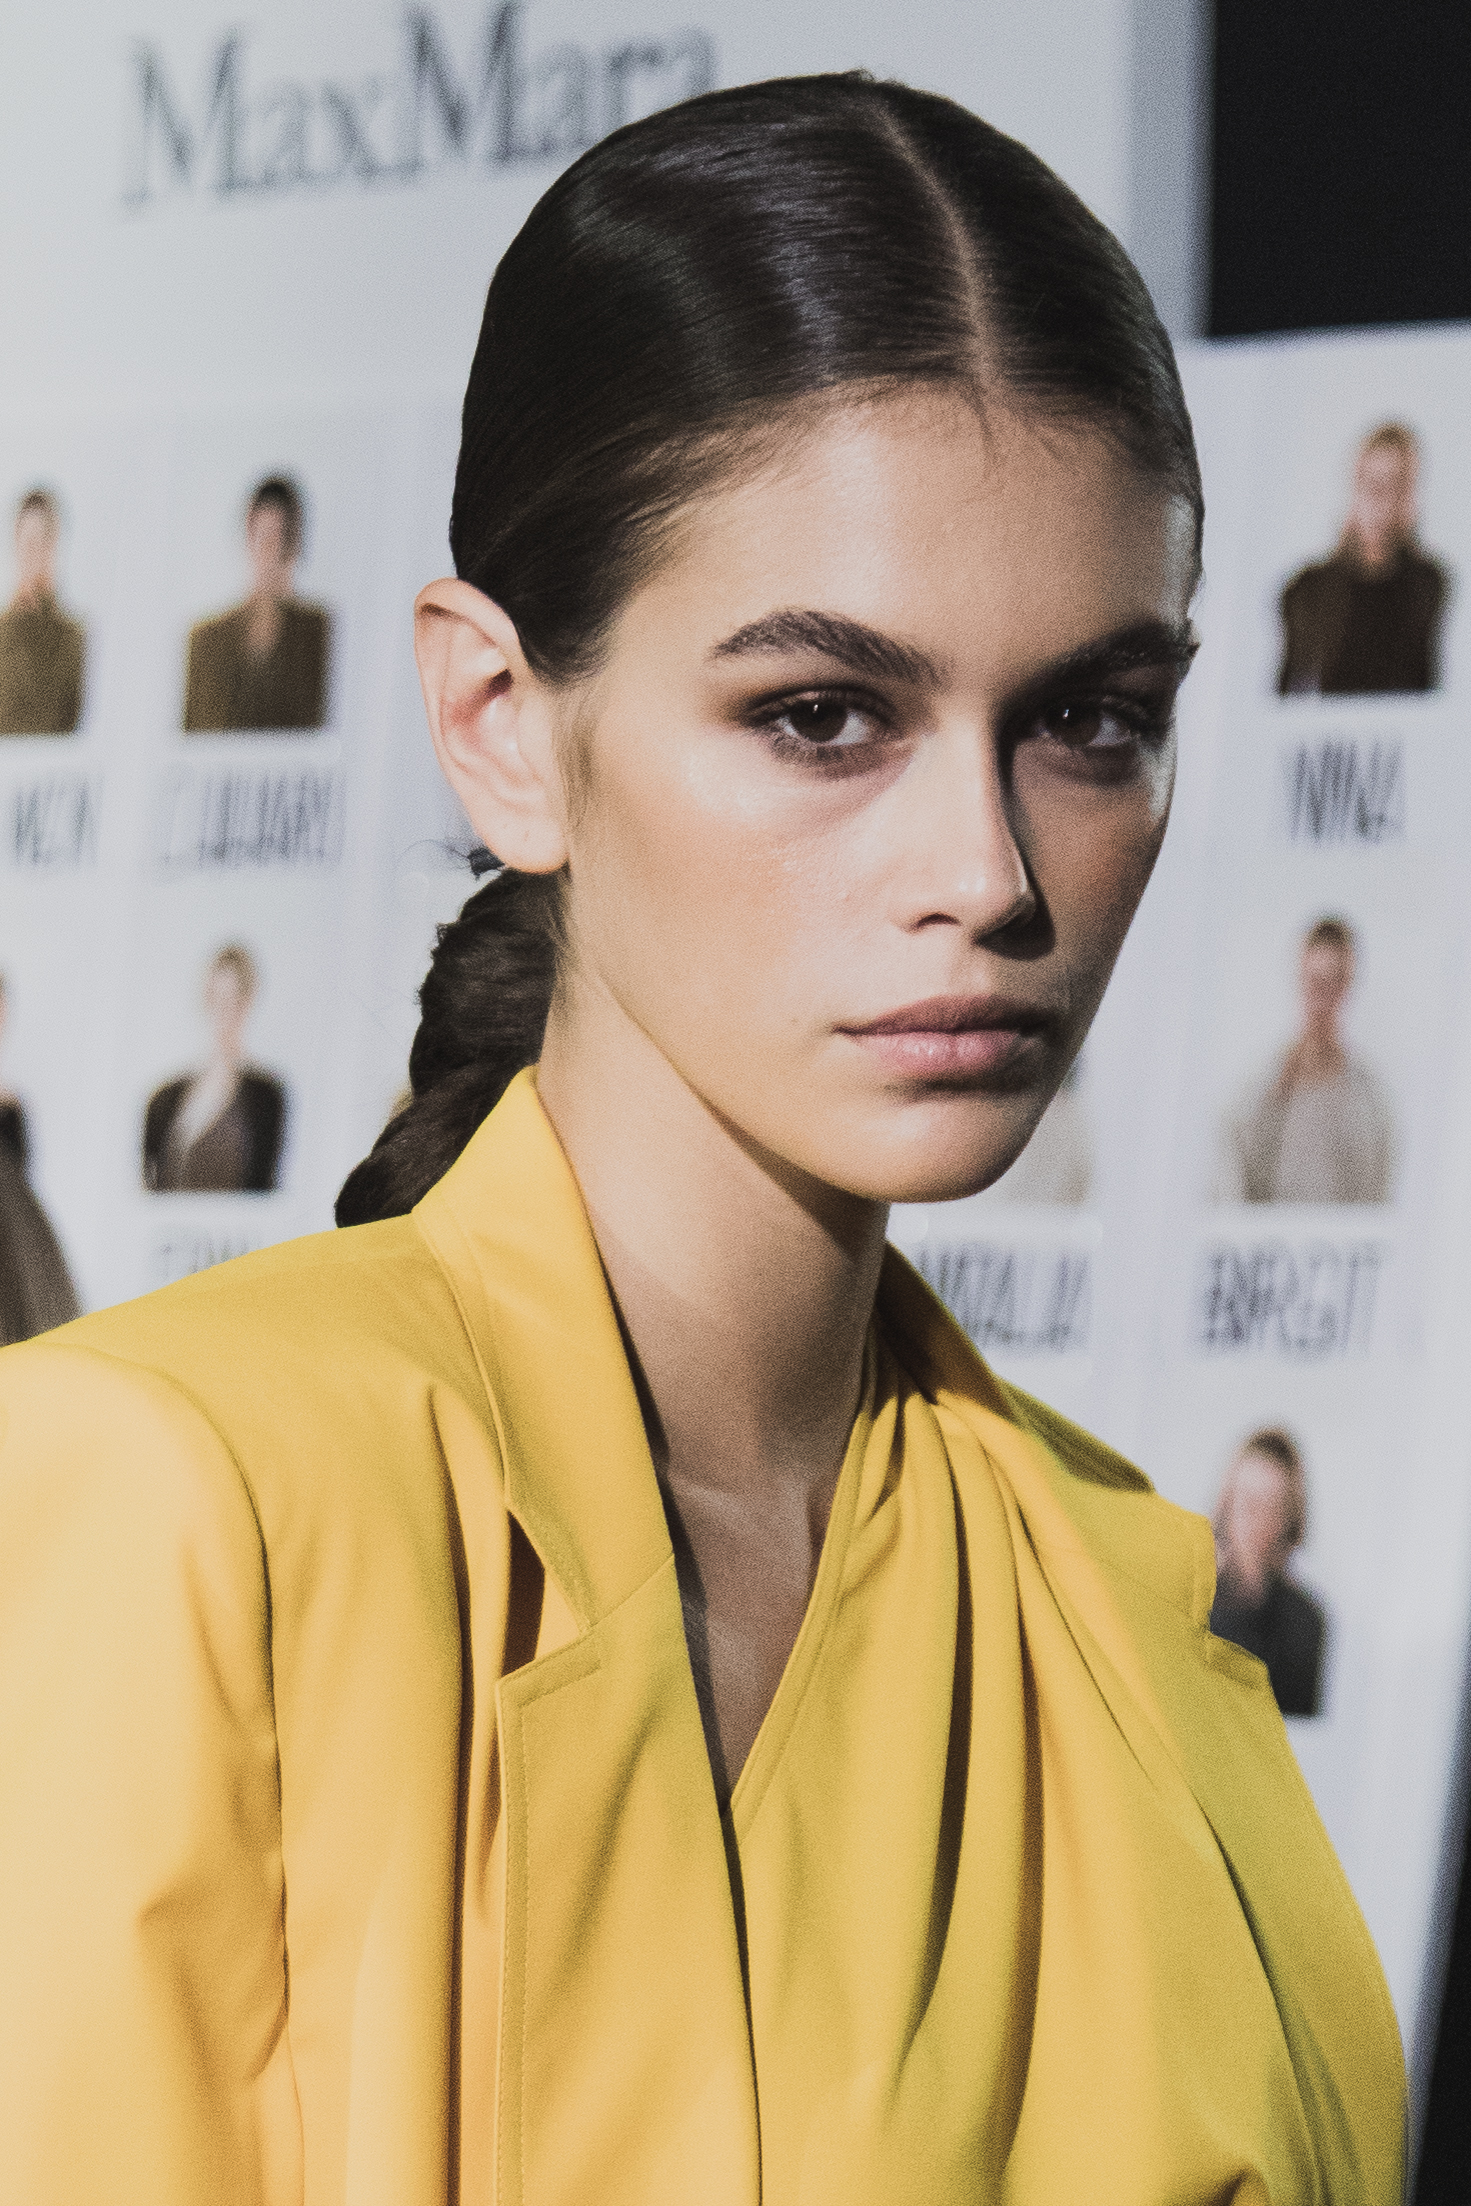 MILAN, ITALY - SEPTEMBER 20:  (EDITORS NOTE: This image was processed using digital filters) Kaia Gerber is seen backstage ahead of the Max Mara show during Milan Fashion Week Spring/Summer 2019 on September 20, 2018 in Milan, Italy.  (Photo by Vittorio Zunino Celotto/Getty Images)